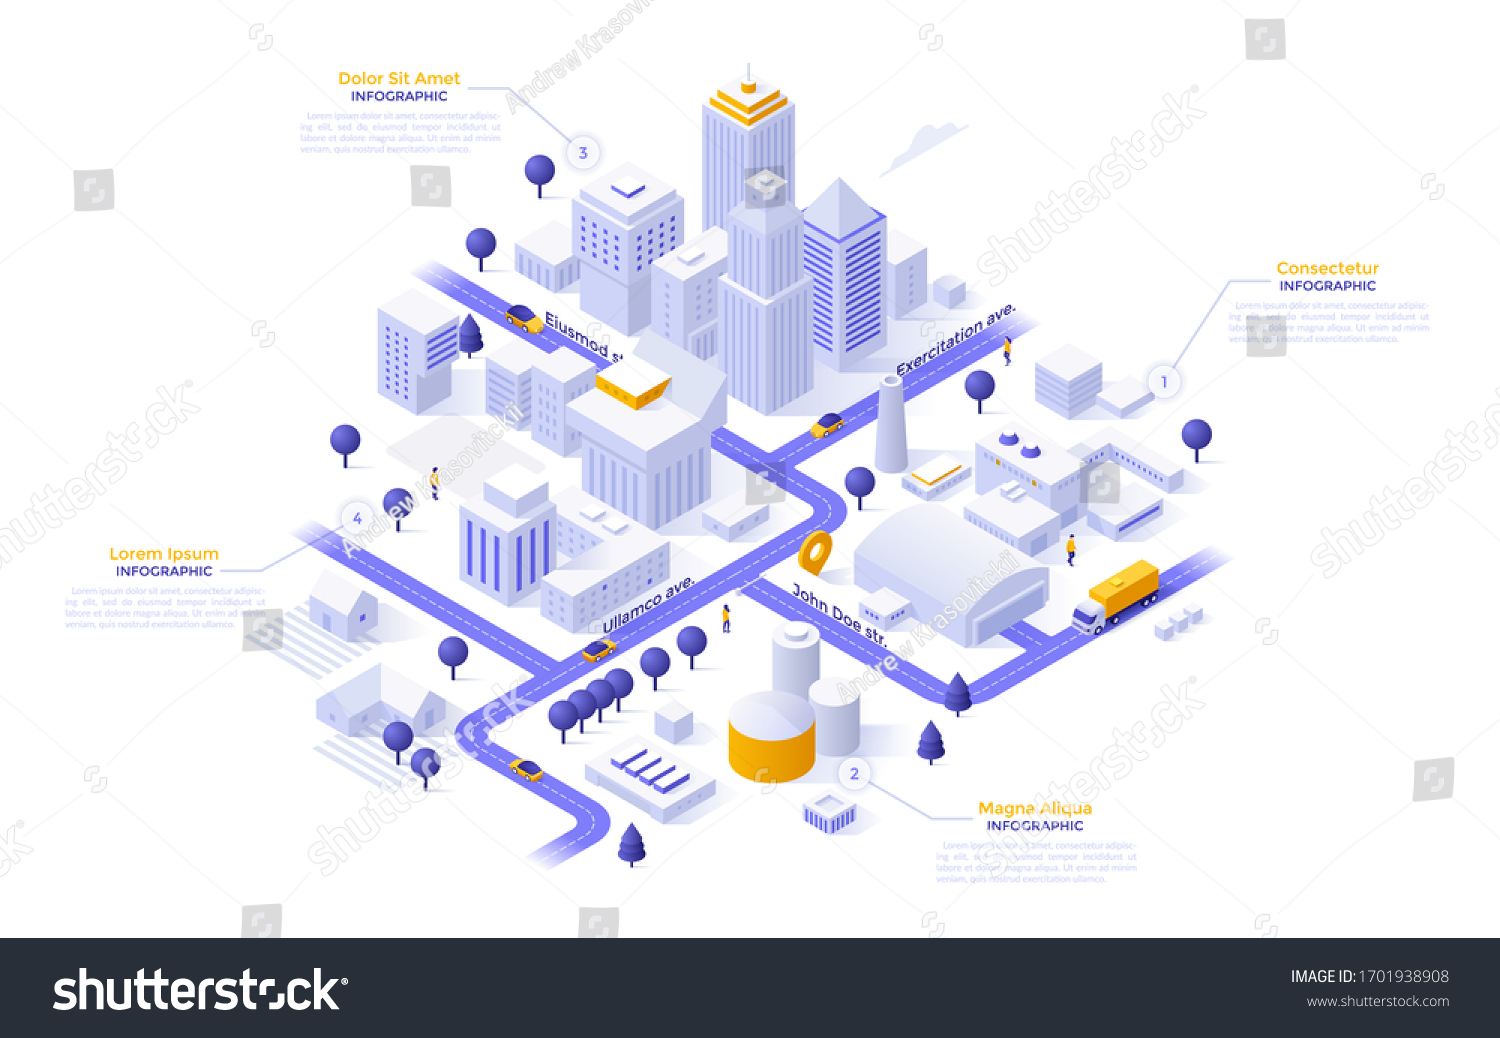 Isometric map of city downtown or business district, industrial zone and suburban area with paper white buildings, houses and skyscrapers. Modern infographic design template. Vector illustration. #1701938908